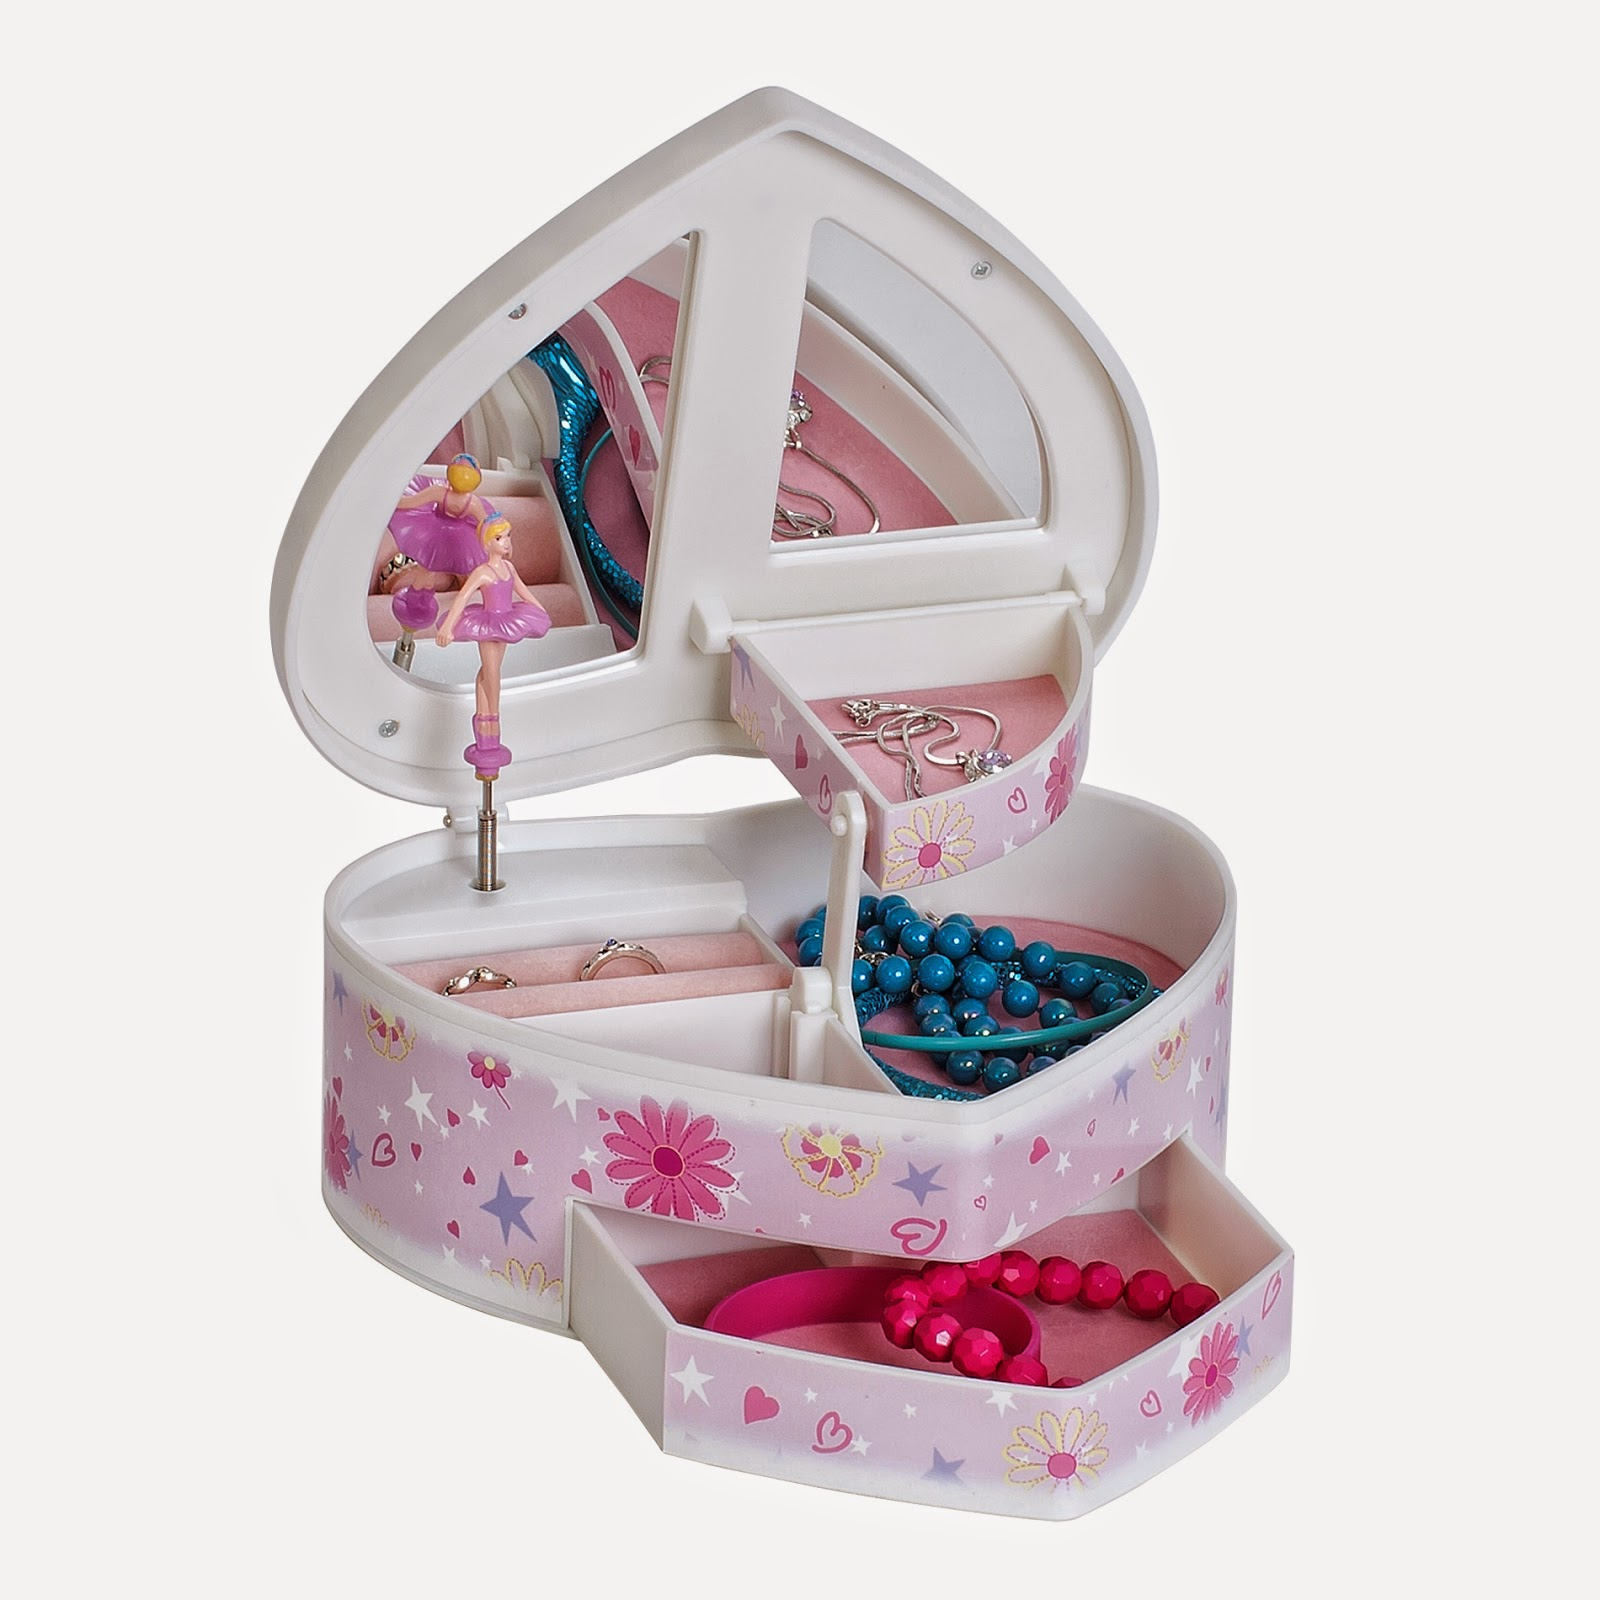 girls musical jewelry box plays swan lake